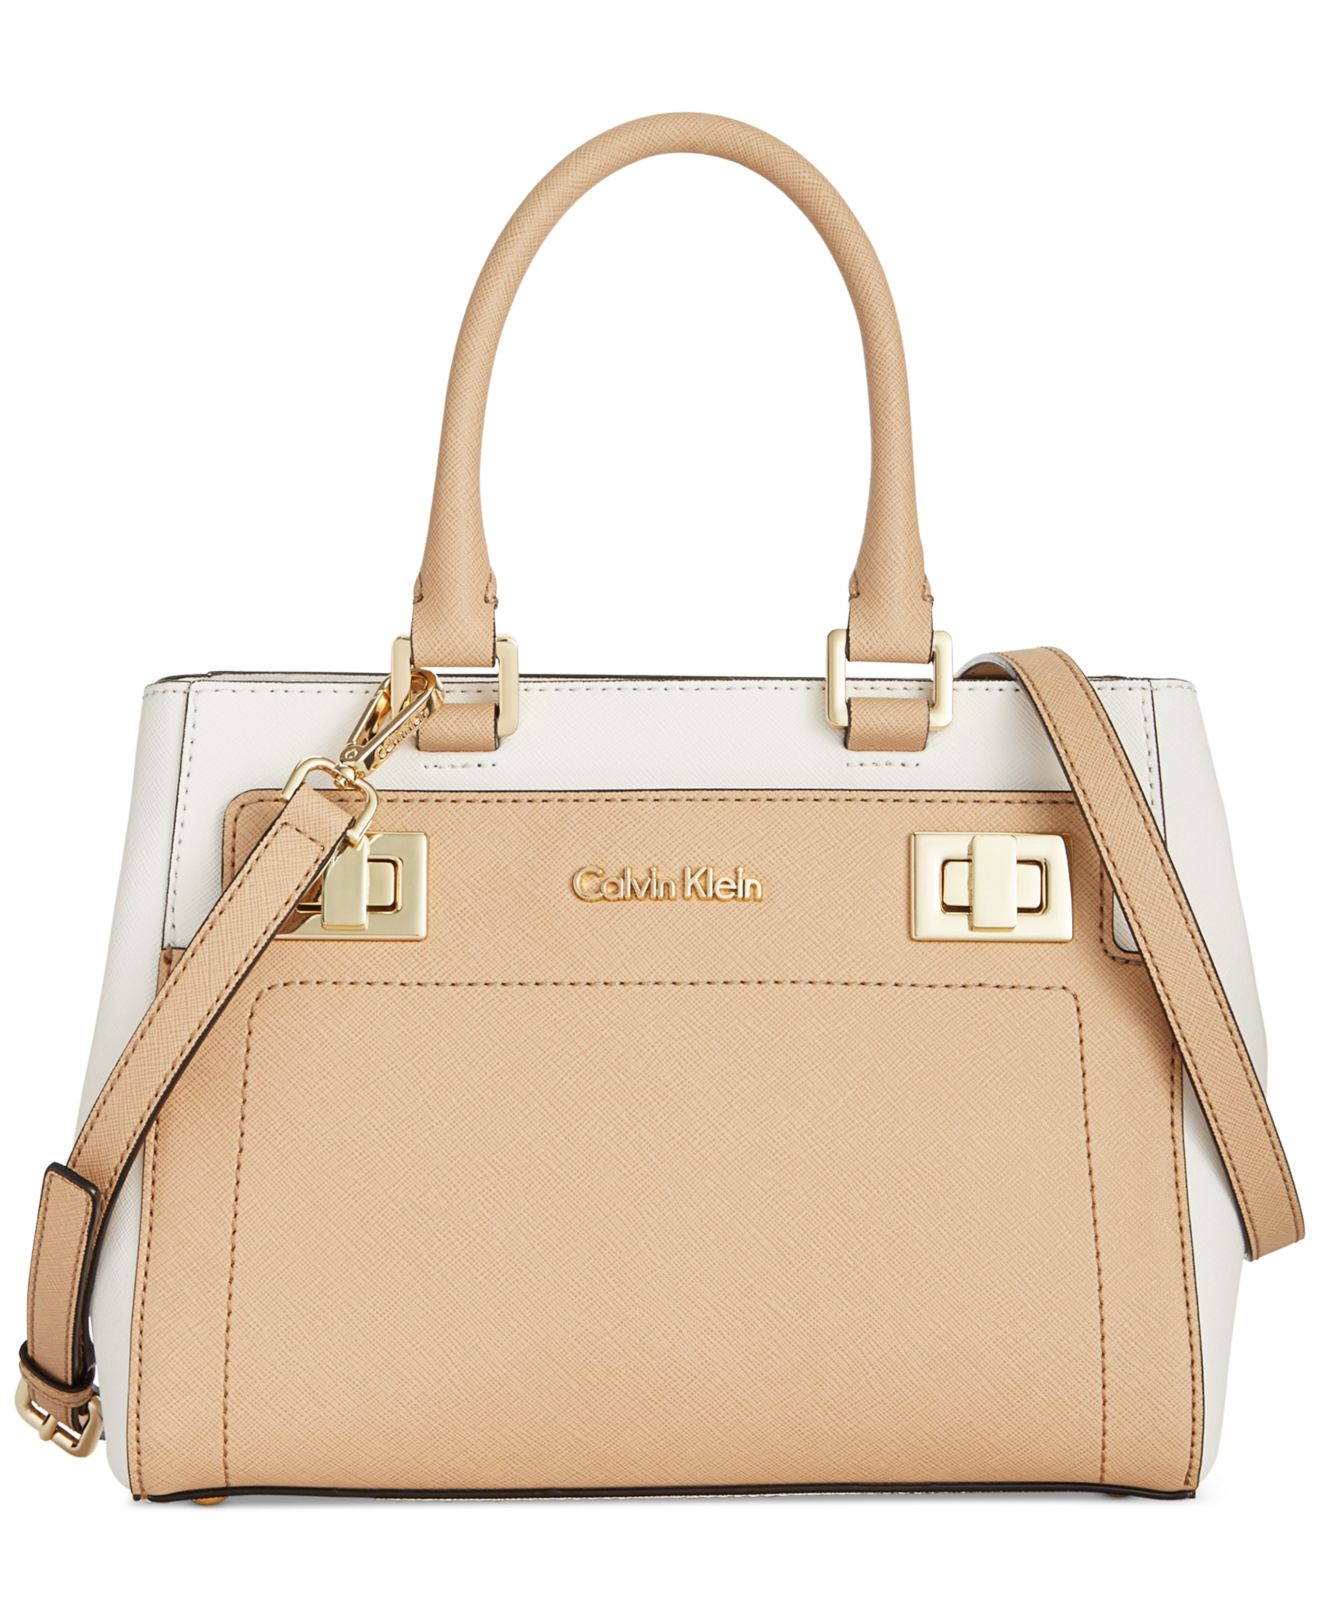 c0bb5576921 Gallery. Previously sold at: Macy's · Women's Calvin Klein Crossbody